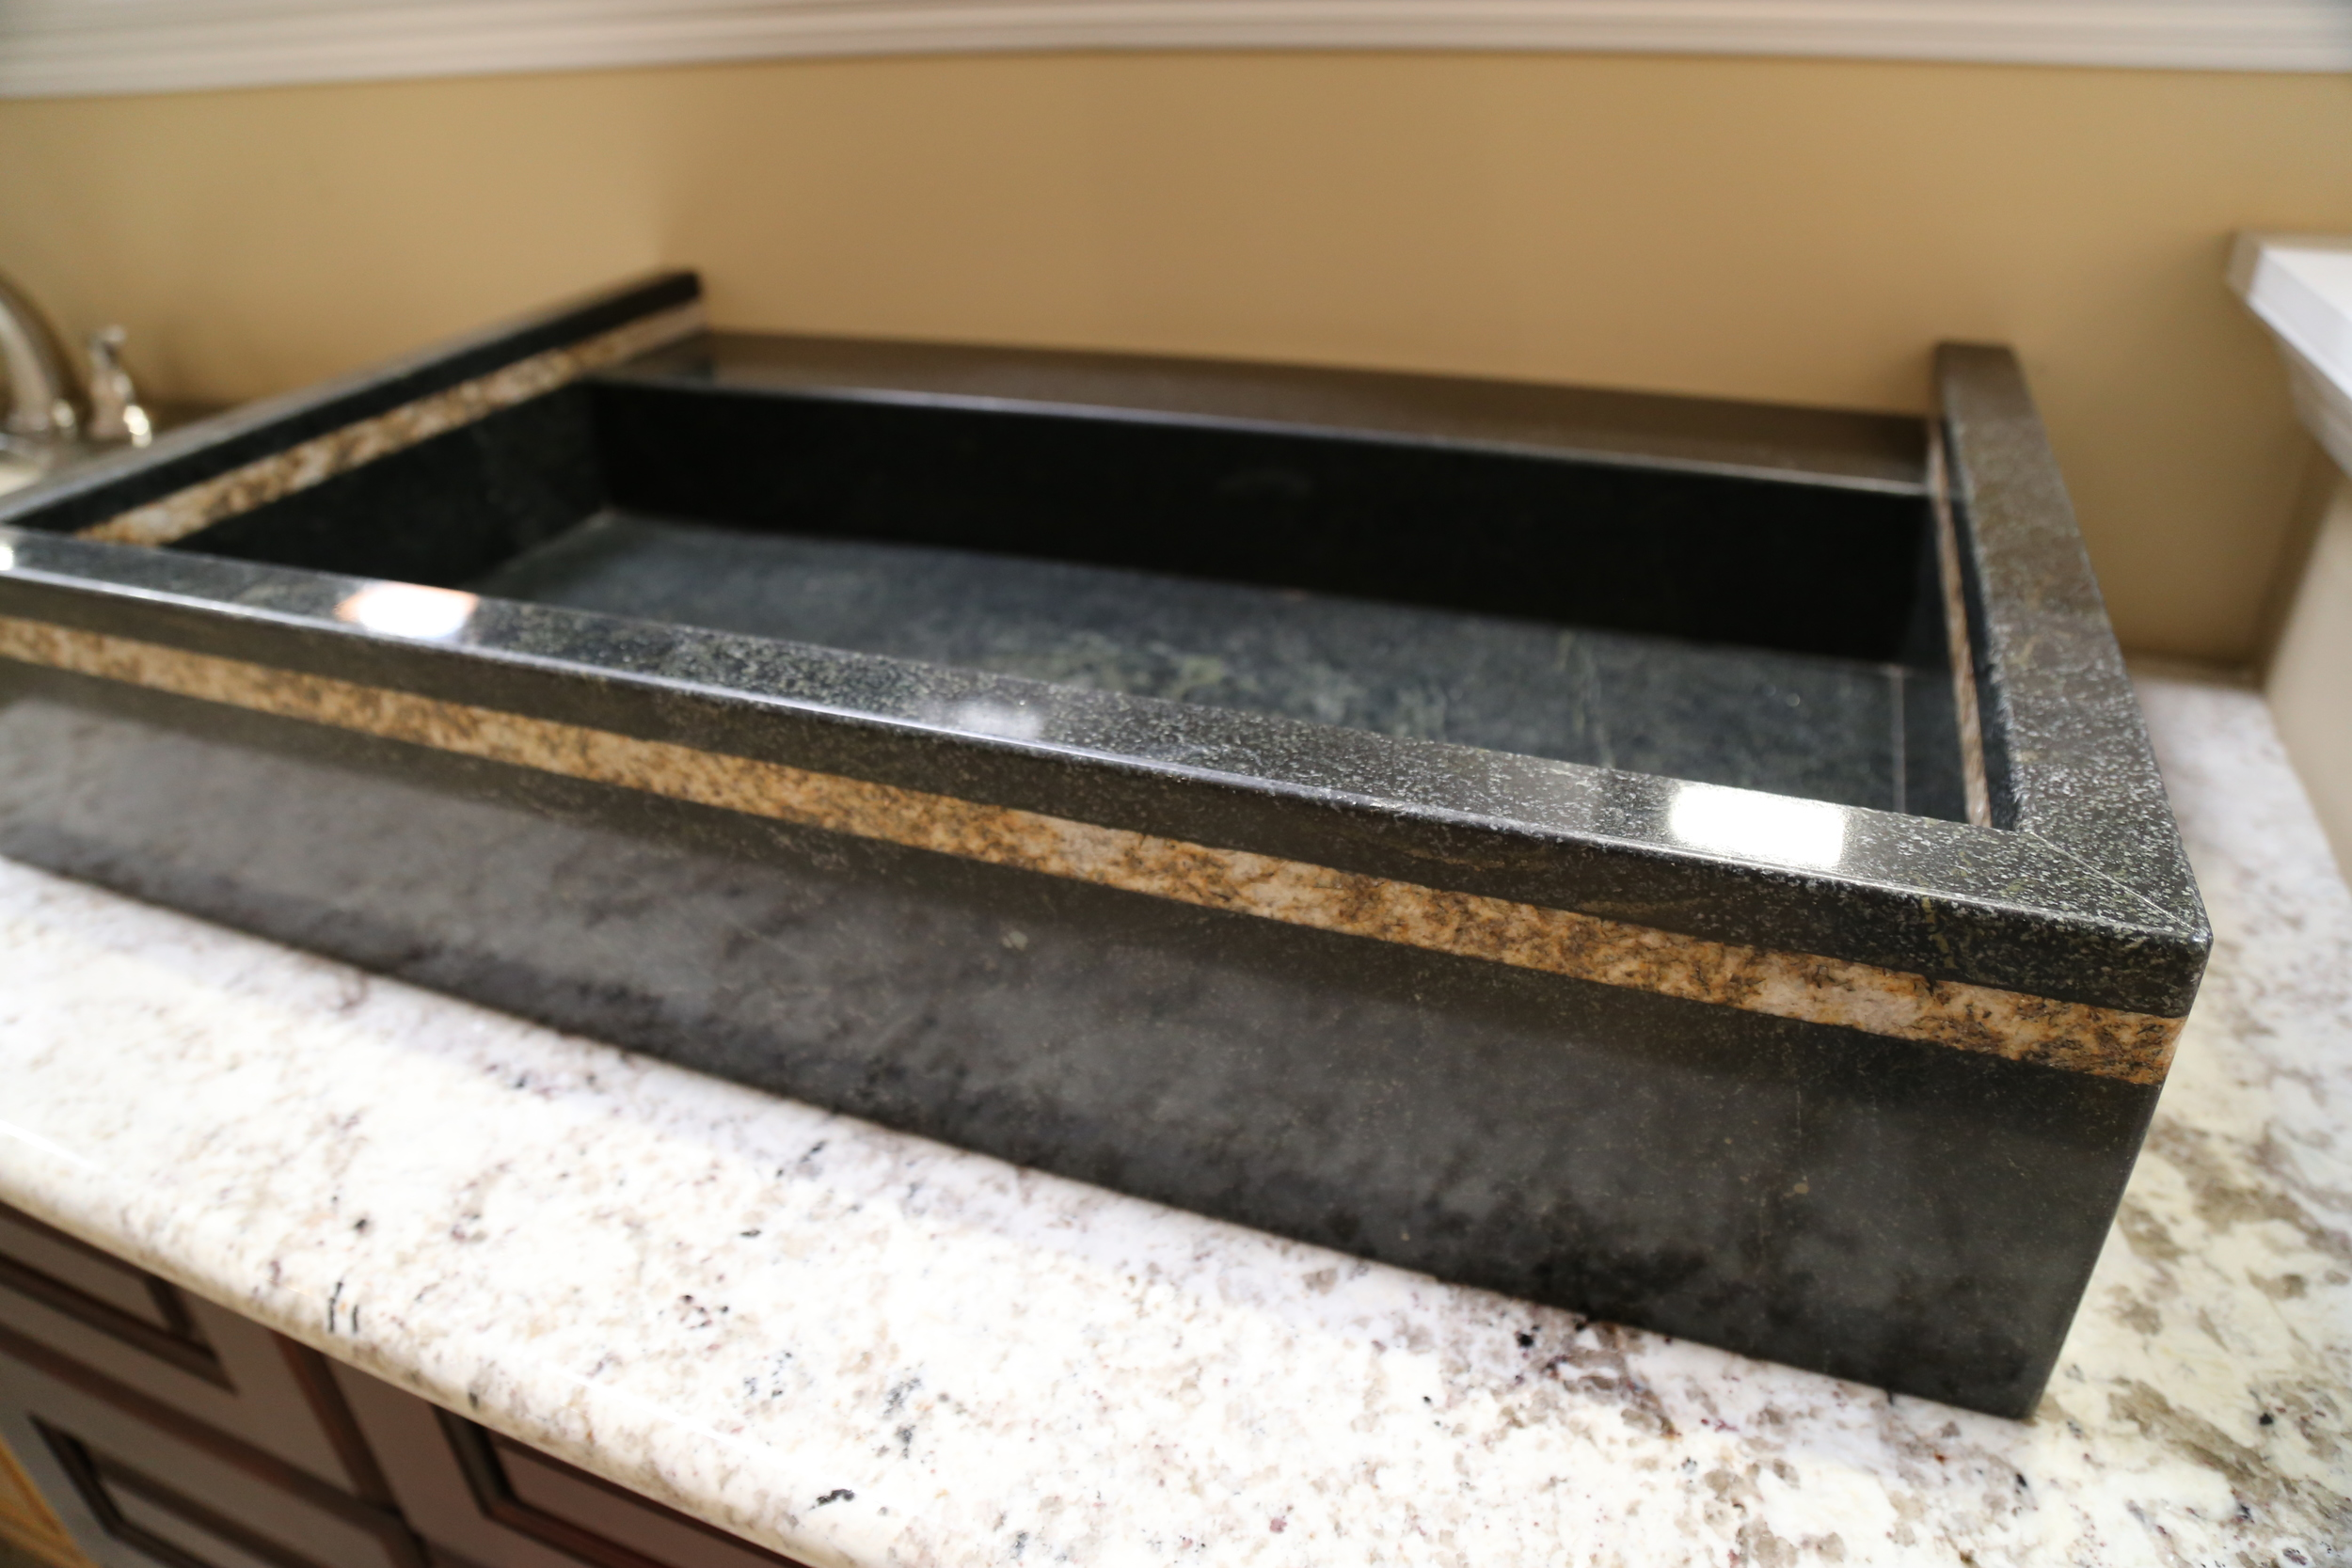 Custom stone sinks are also available.